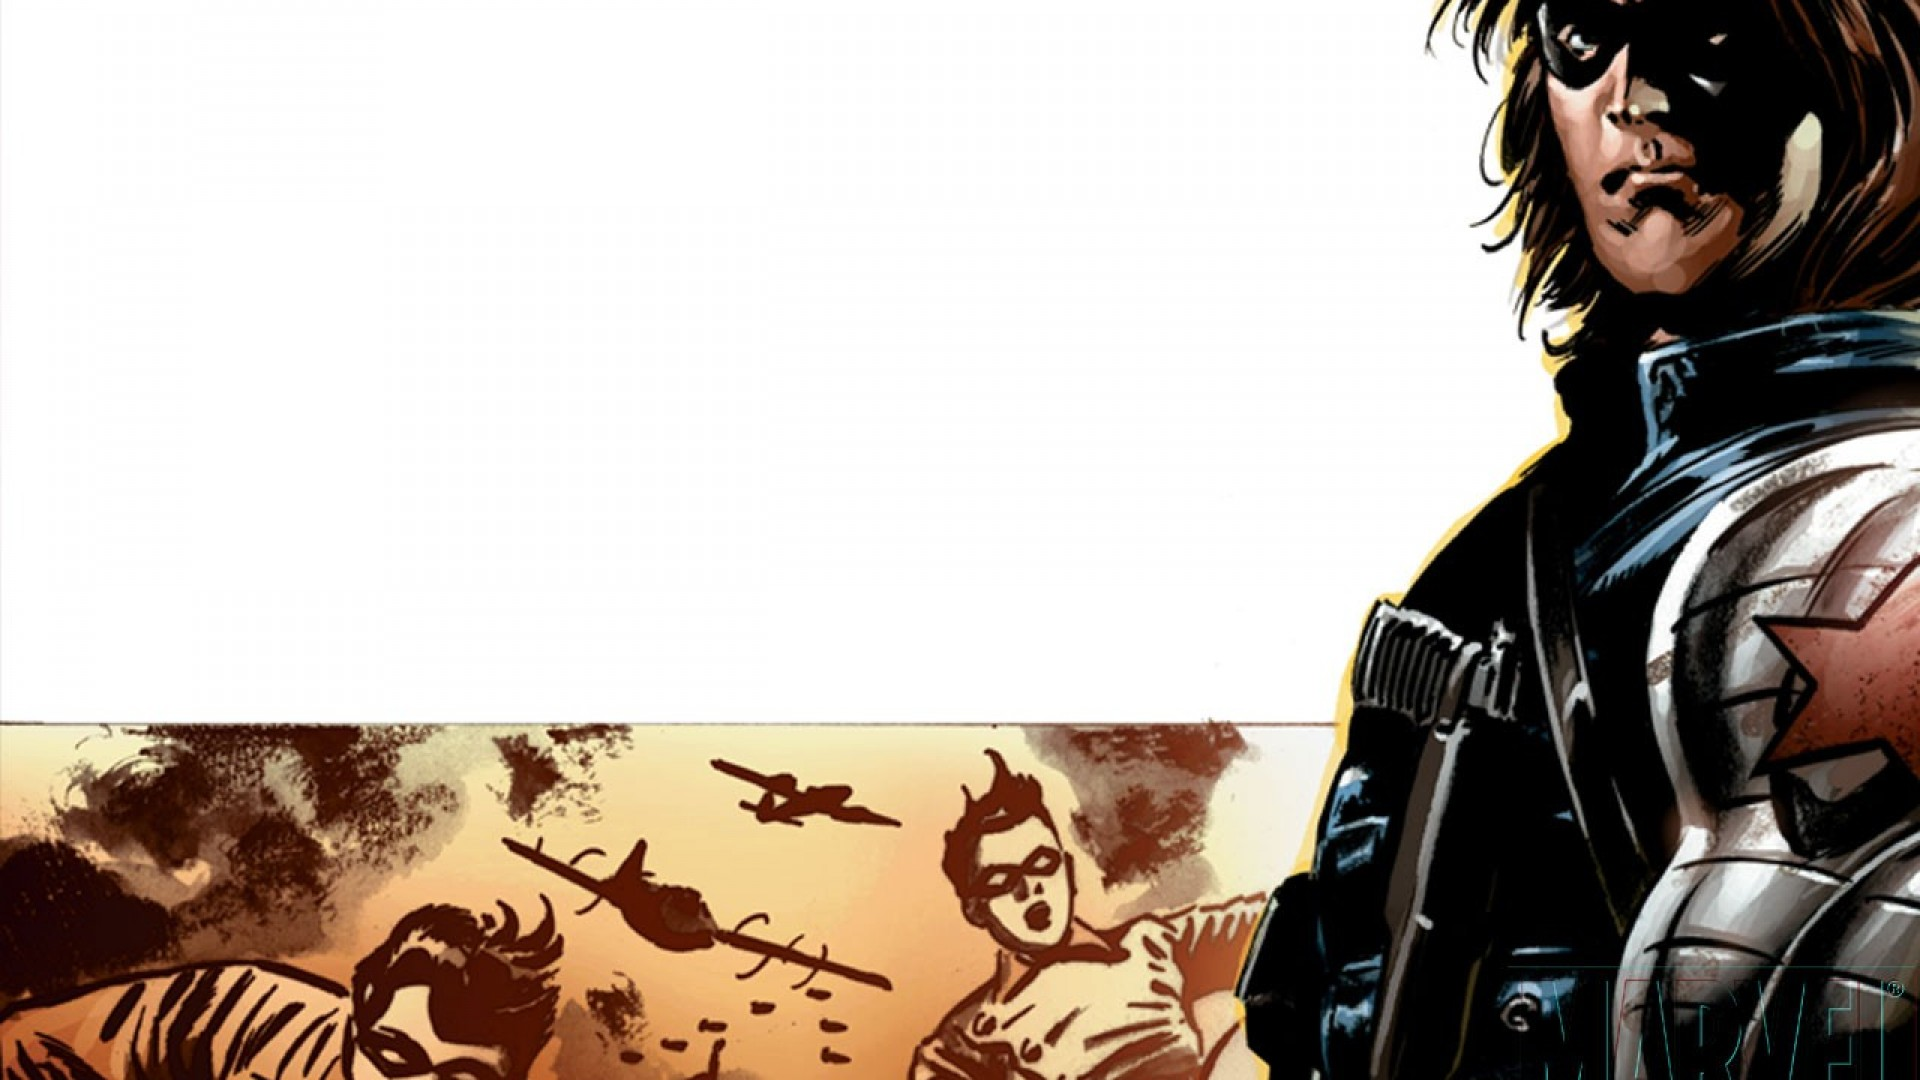 AMERICA THE WINTER SOLDIER Wallpapers and Desktop Backgrounds 9 1920x1080